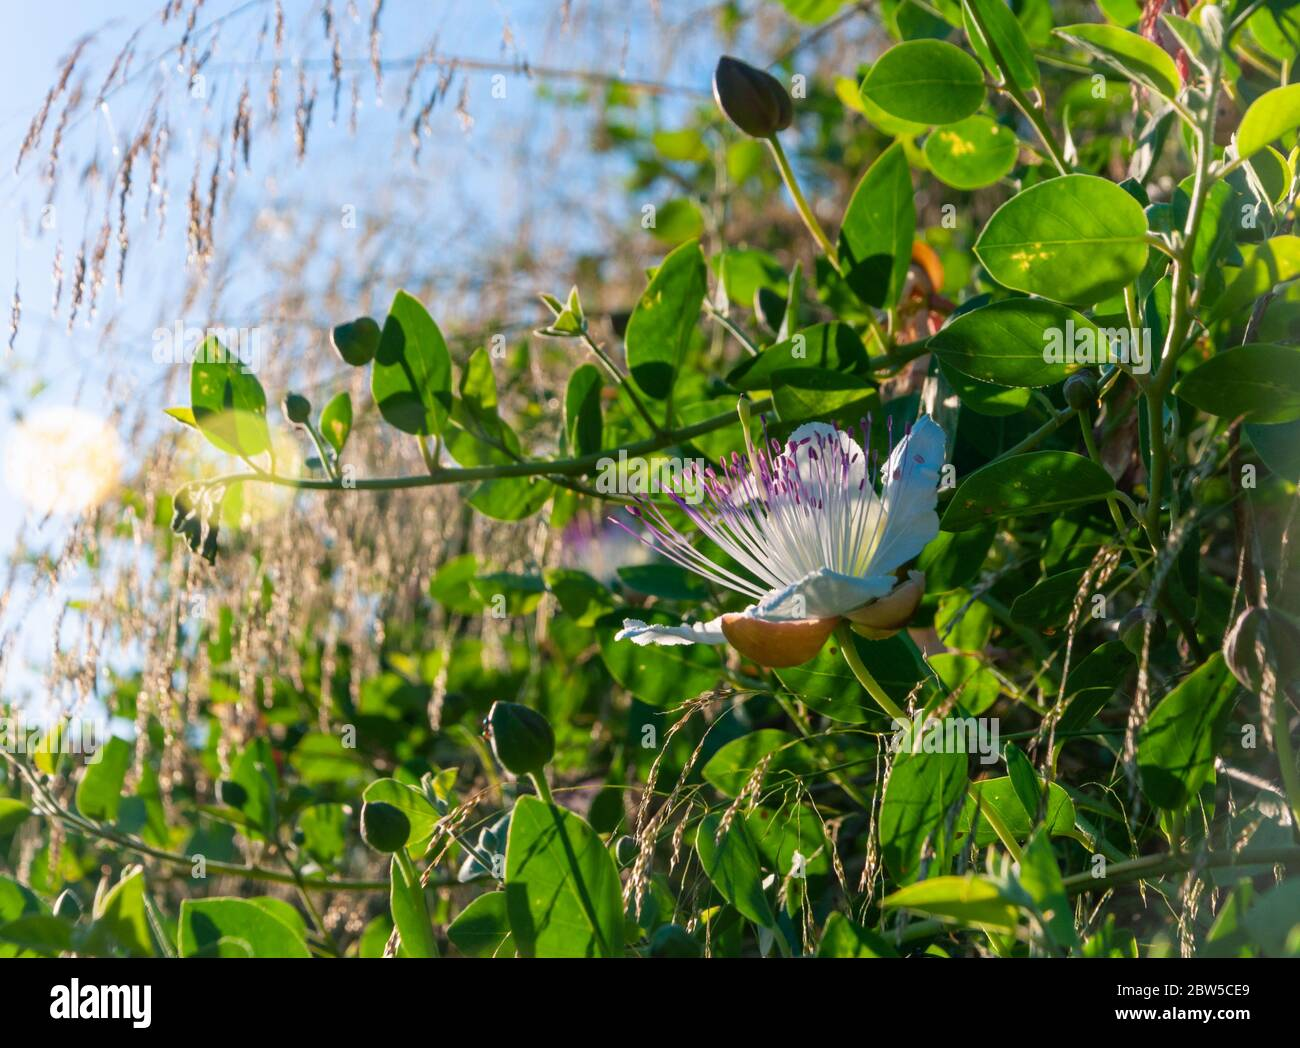 Caper Plant High Resolution Stock Photography And Images Alamy,Summer Drinks With Vodka